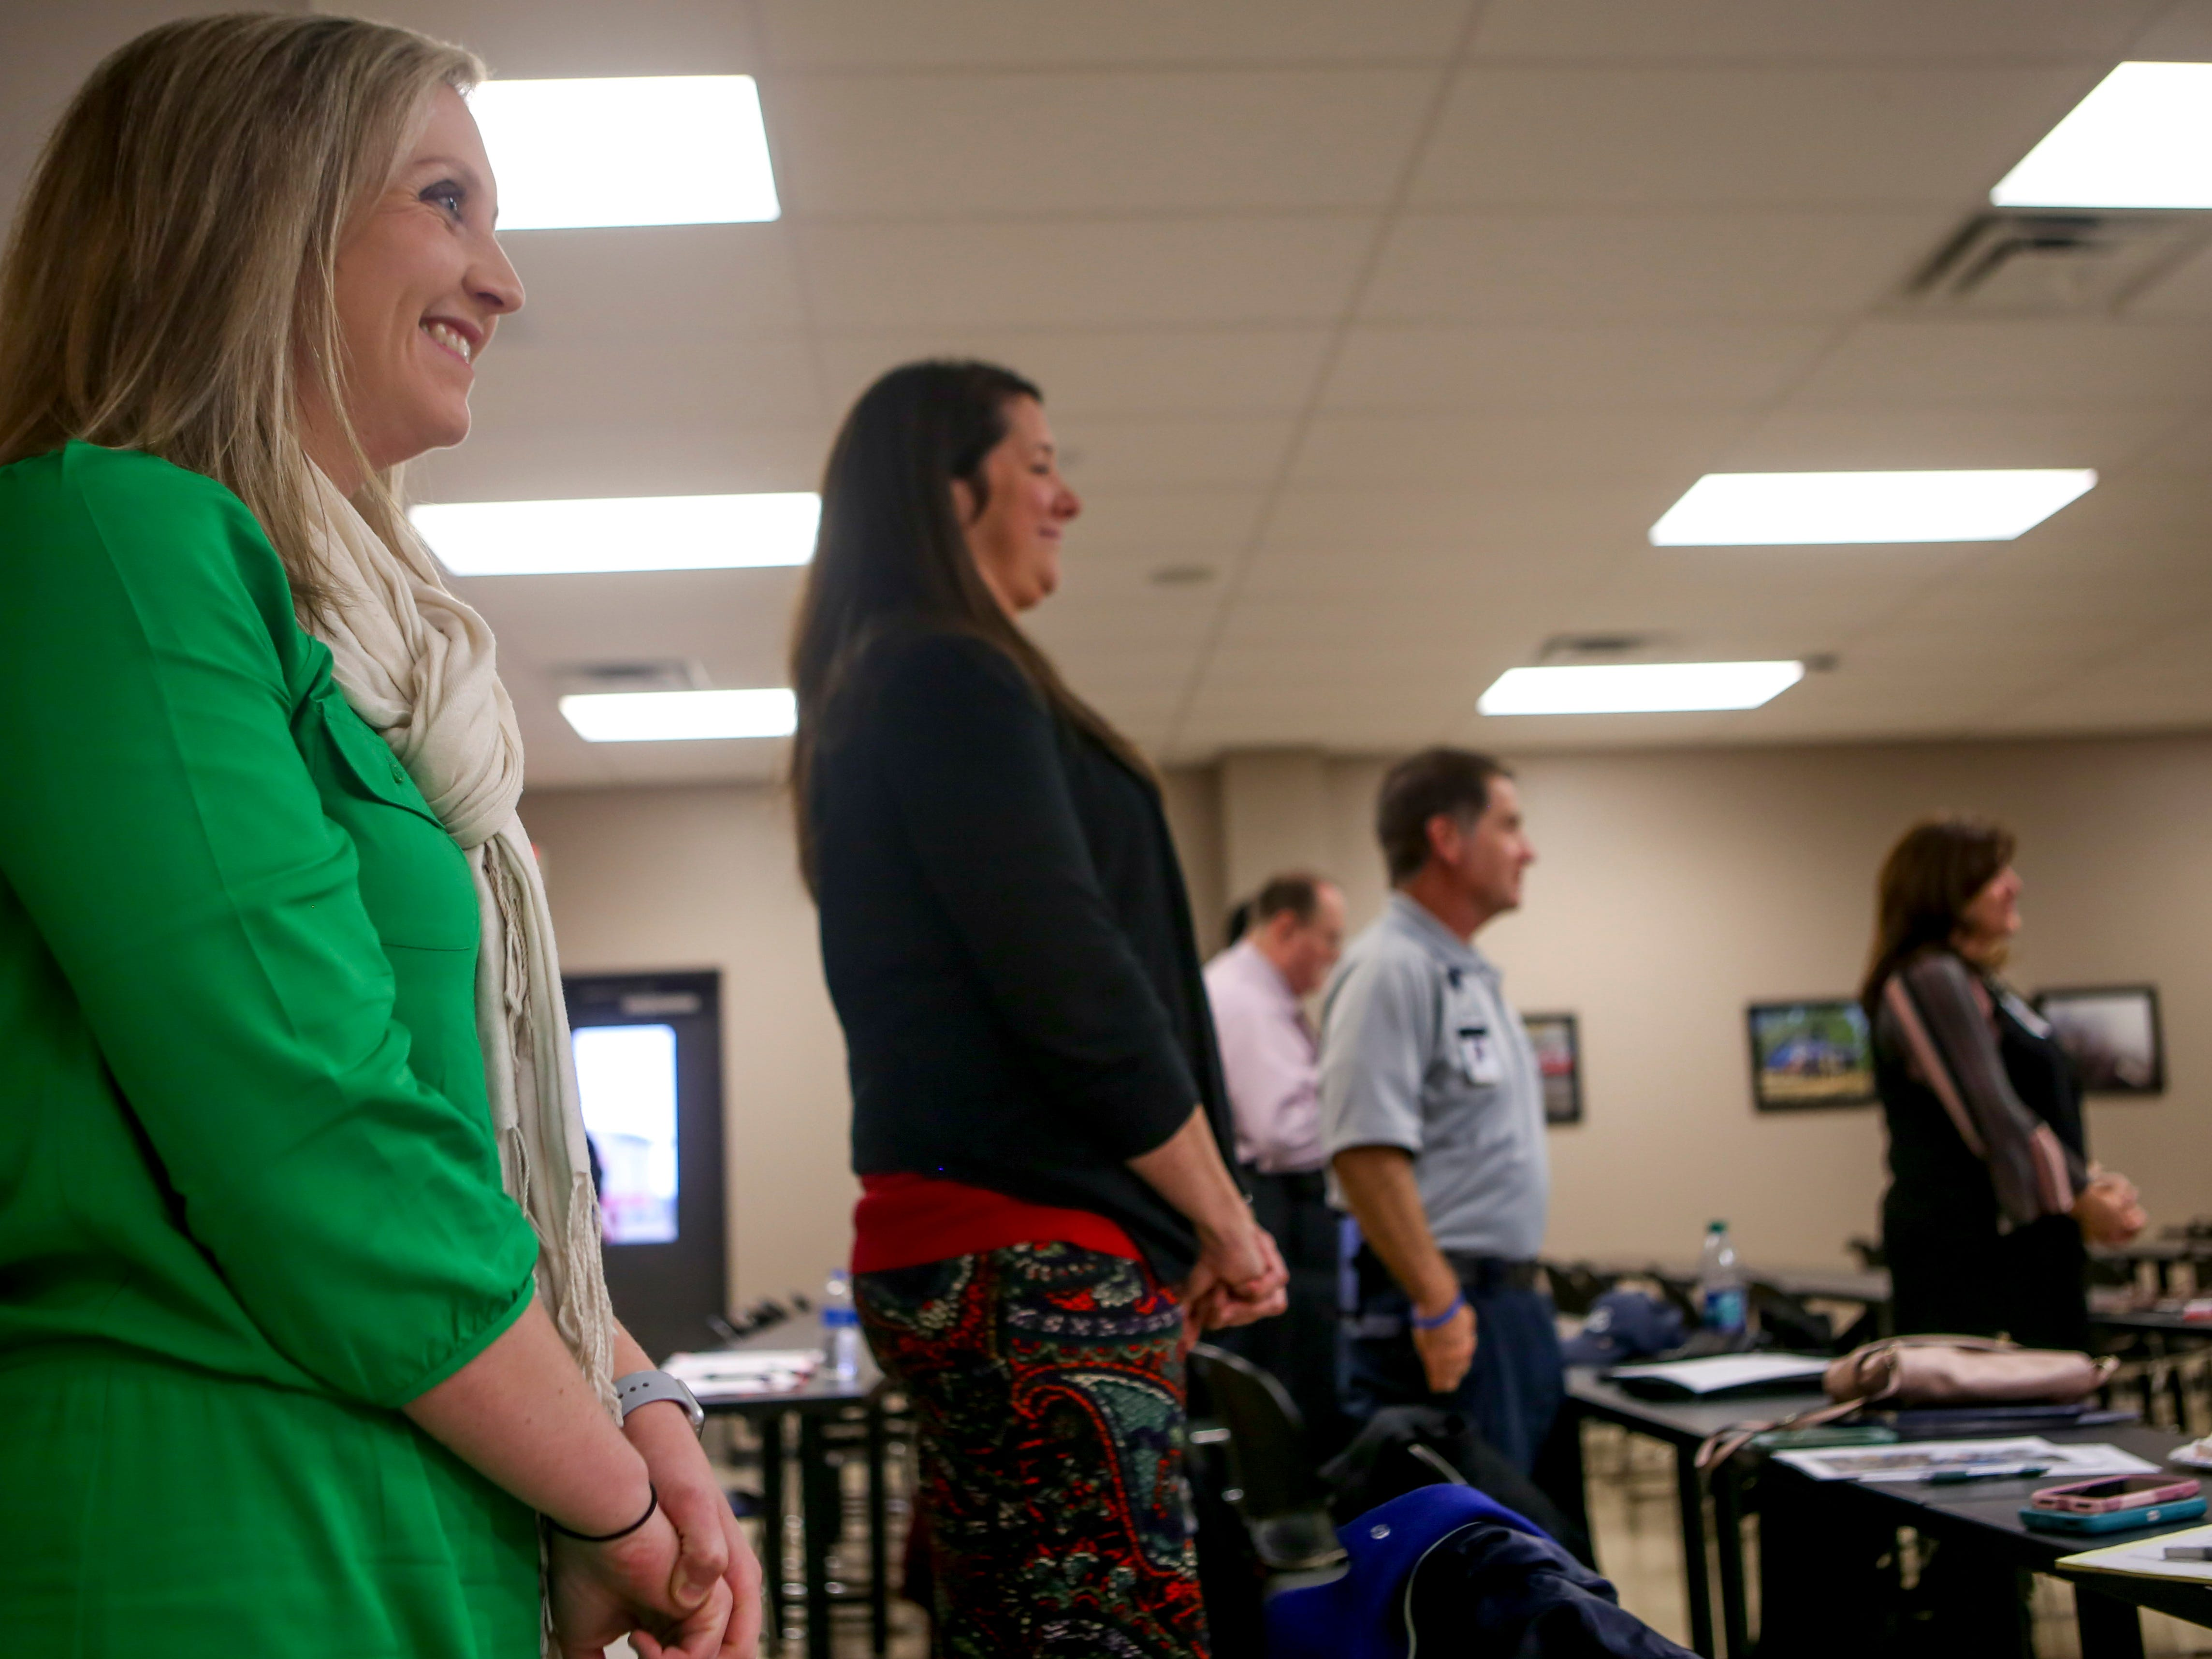 Attendees watch their friend Kylee Jo Lam be presented the Safe Kids Person of the Year award at Madison County Fire Department in Jackson, Tenn., on Thursday, Dec. 6, 2018.